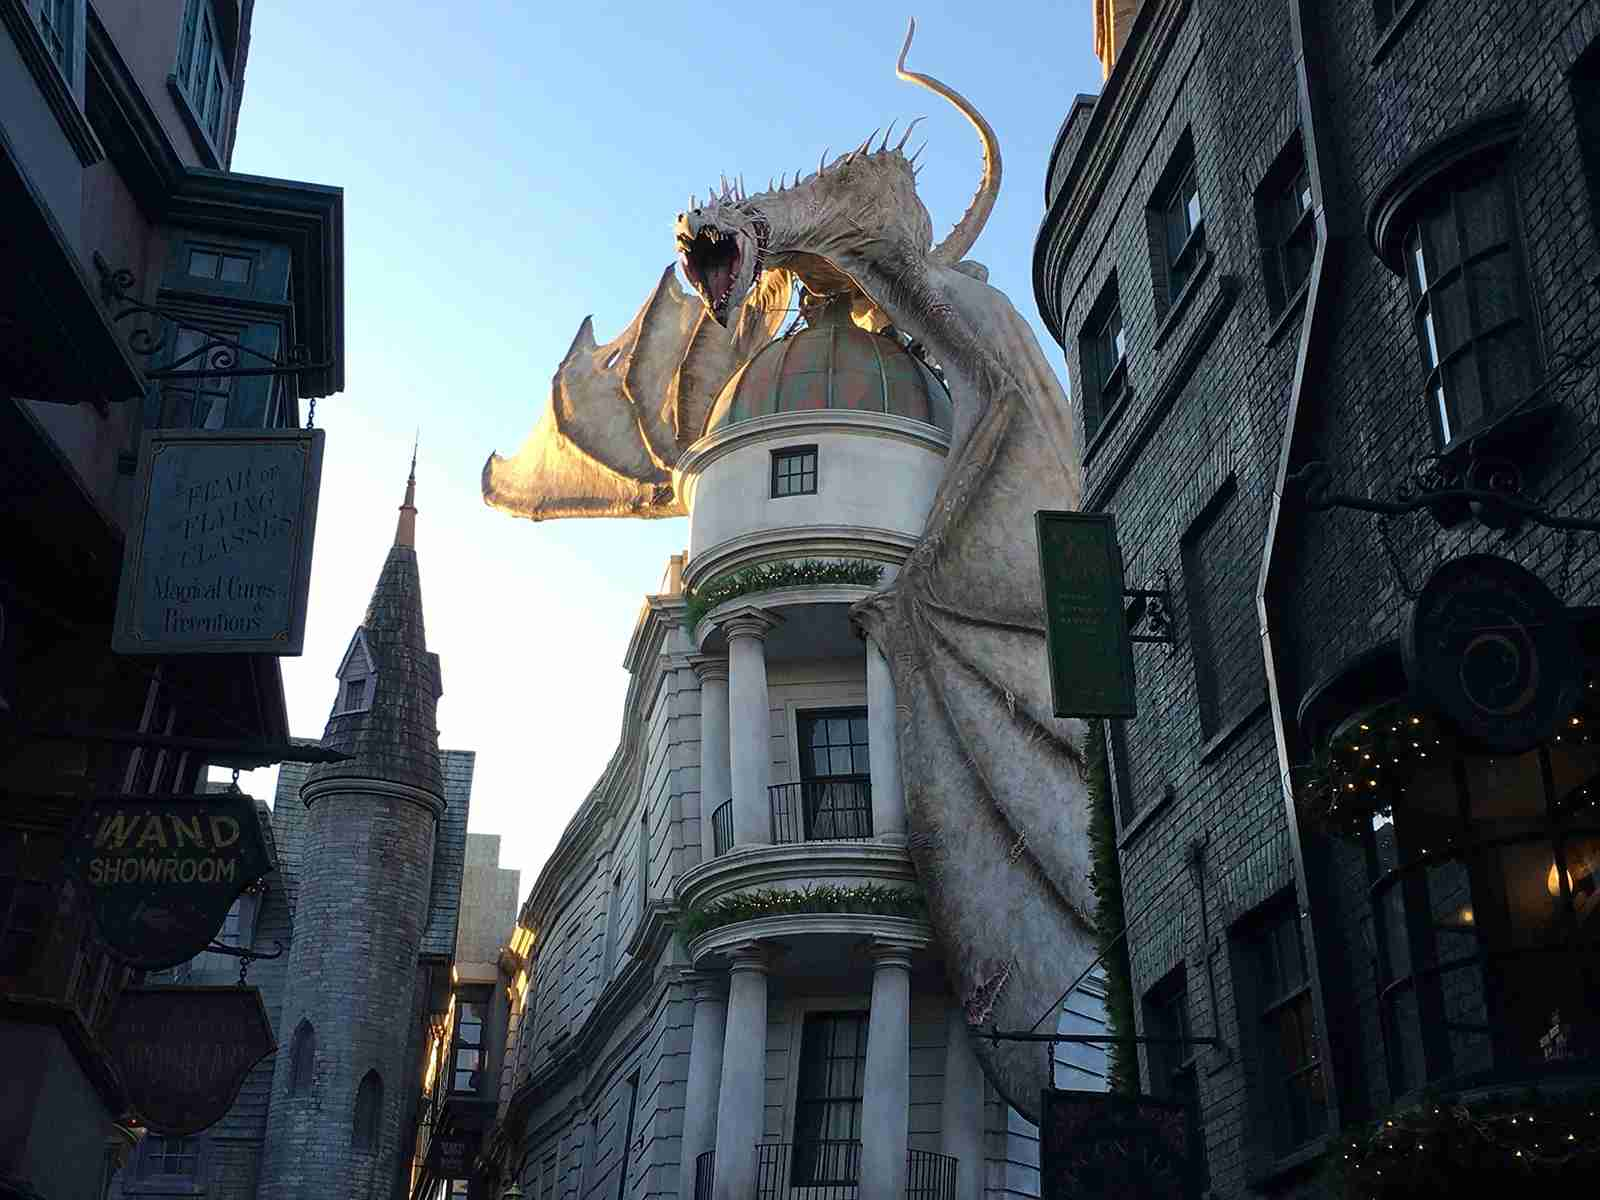 The dragon atop Gringotts breathes fire several times a day. (Photo by Andrea M. Rotondo/The Points Guy.)